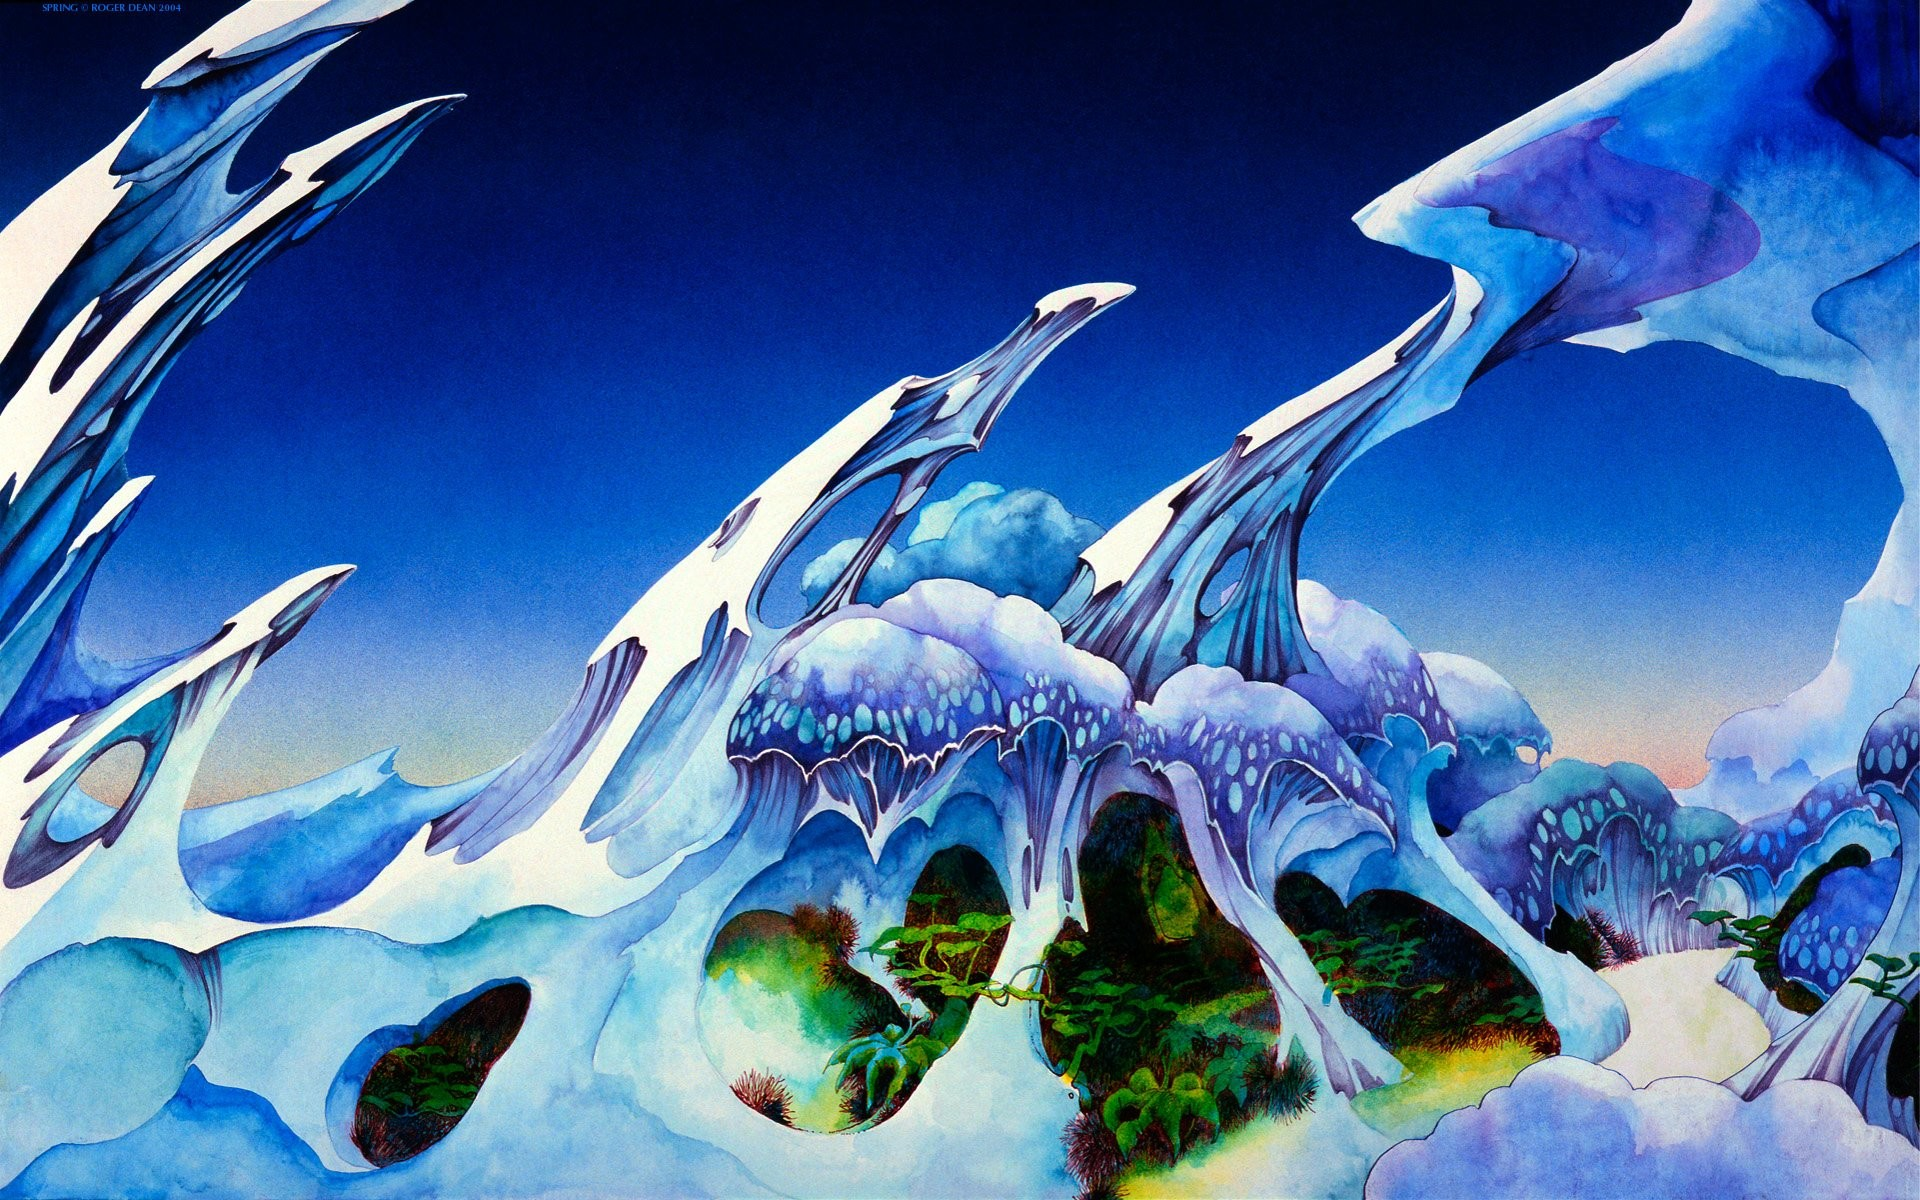 1920x1200 Wallpapers Roger Dean High Quality And Resolution Ii  .